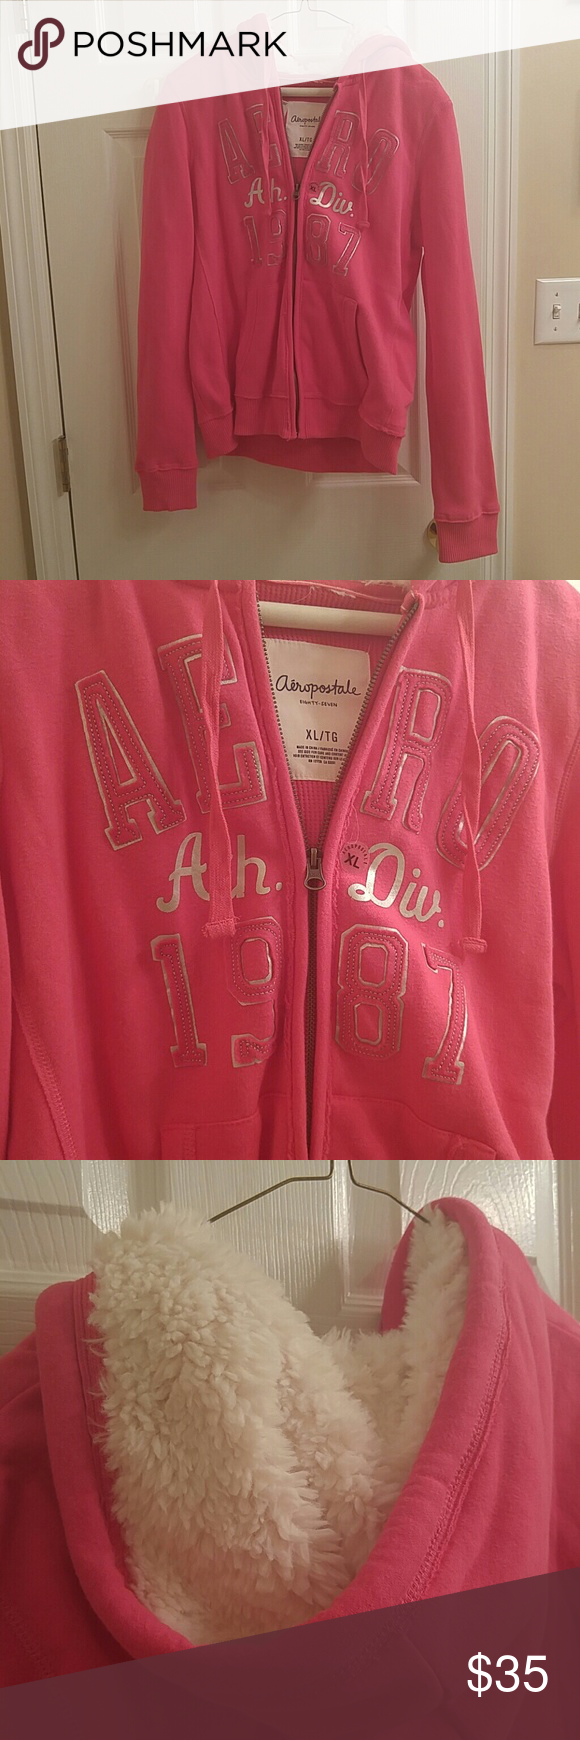 Aeropostale zip-up jacket Pink Aeropostale jacket with full front zipper and faux fur hood. There is a pocket on either side of the zipper on the front. In perfect condition; never been worn. Best for women or teens.  Open to offers! Aeropostale Jackets & Coats